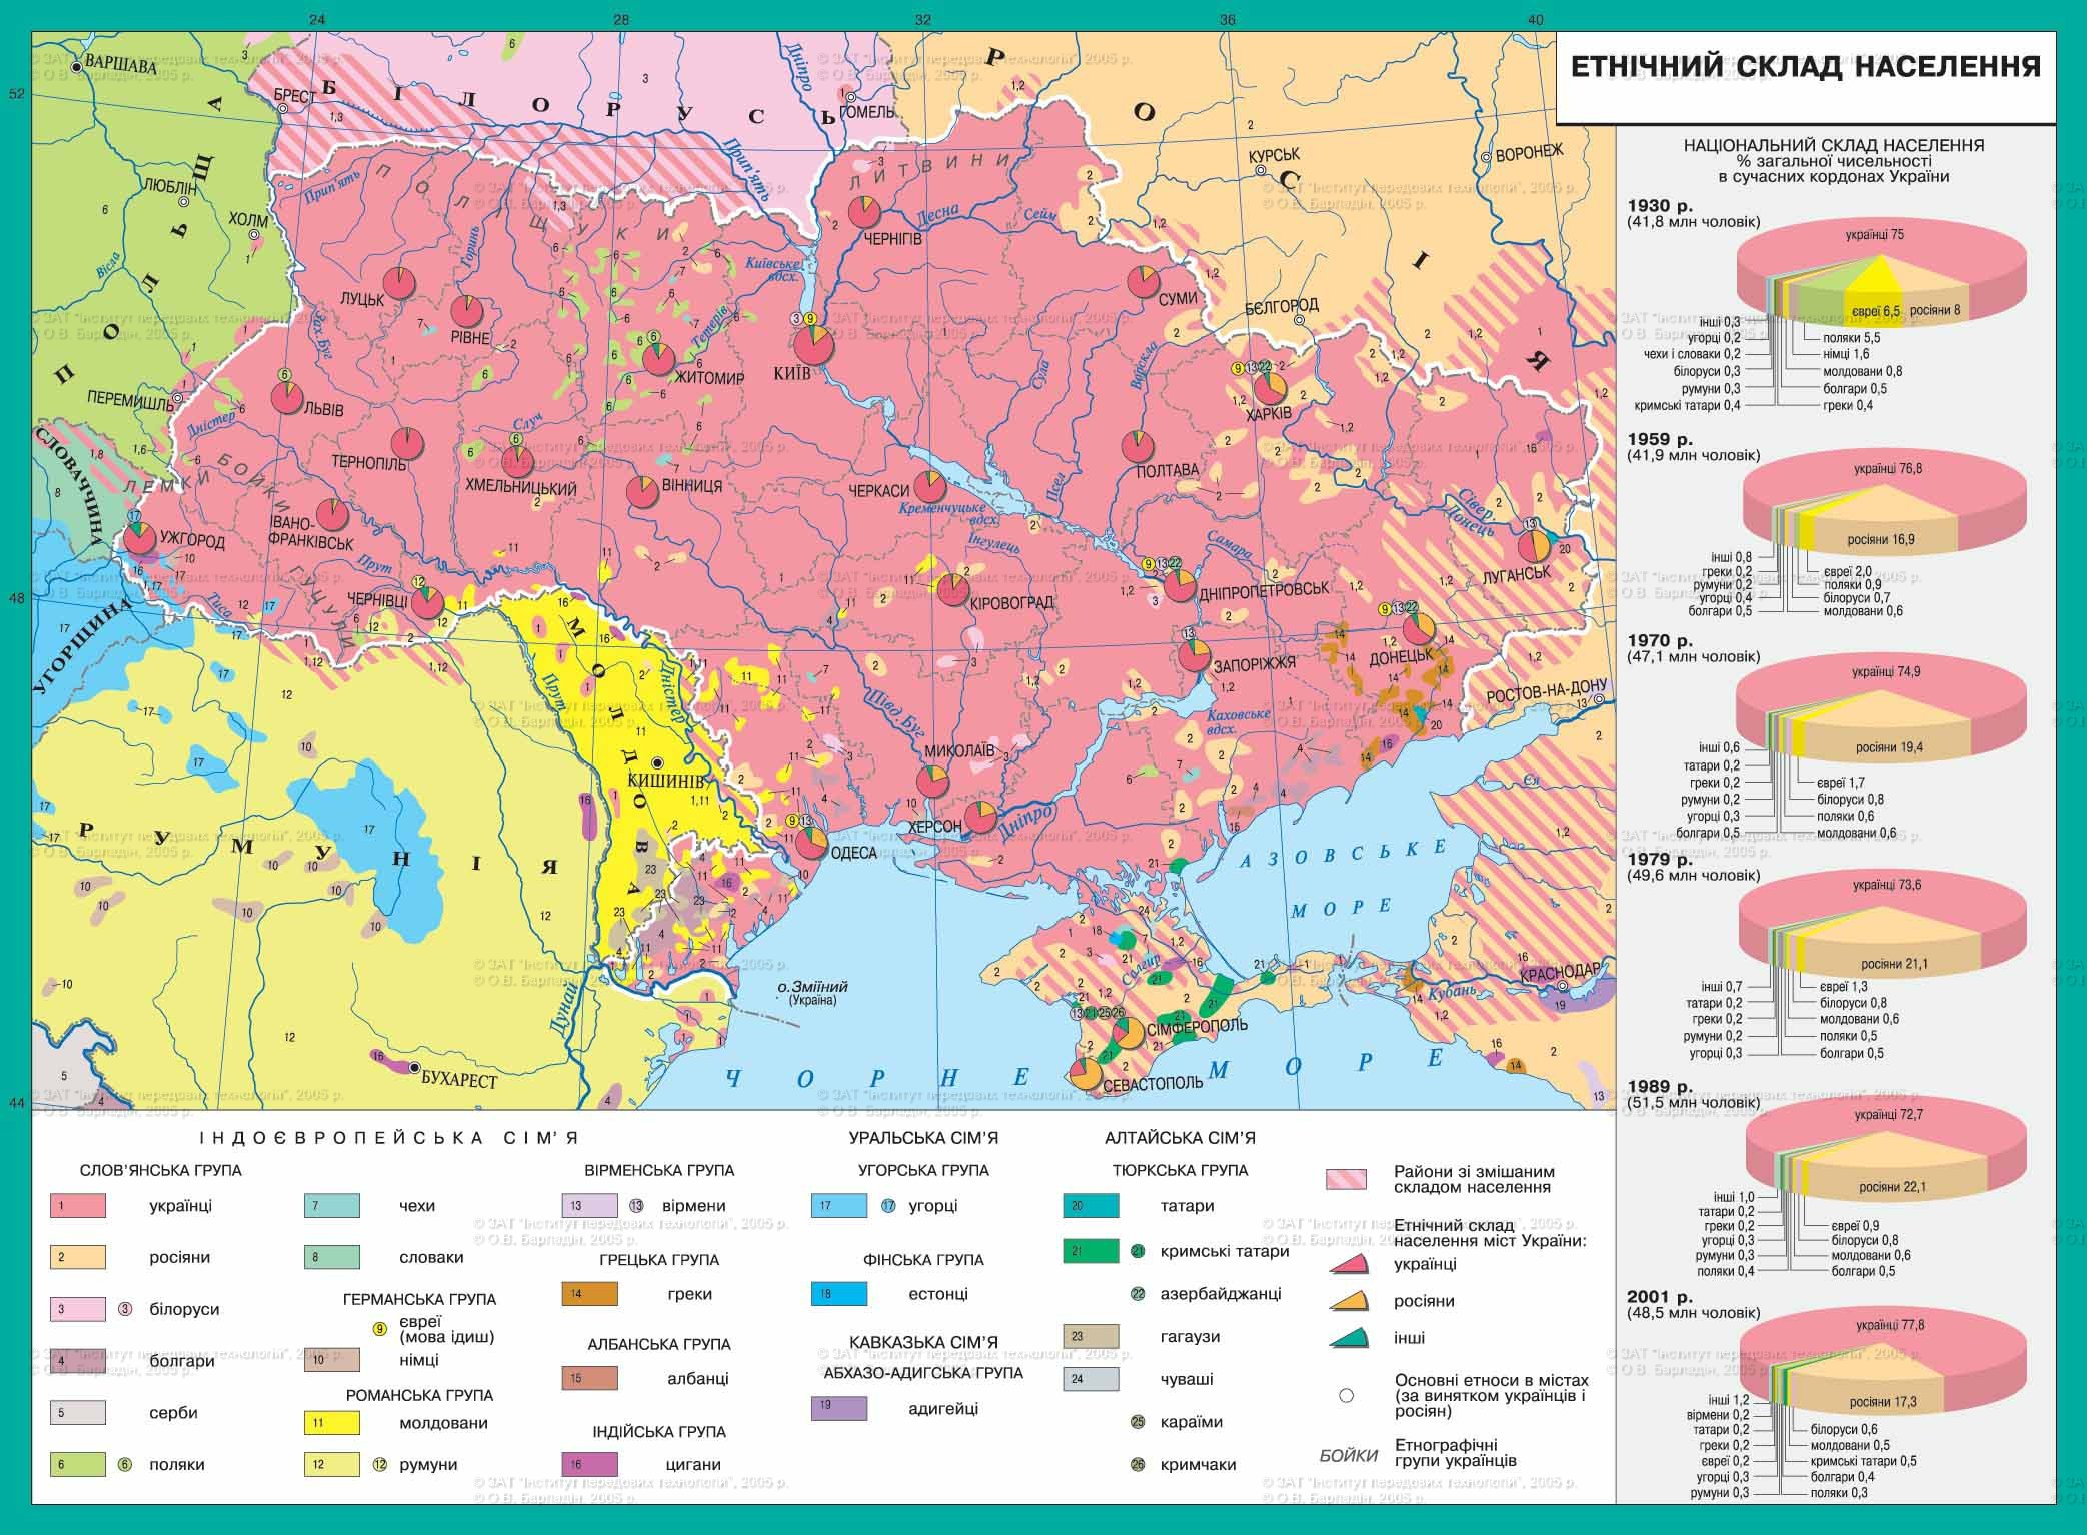 Ukrainian share in the whole potion | History of Ukraine ... on ukraine historical map, ukraine ethnic division, ukraine map crimea, odessa ukraine map, ukraine population density map, ukraine map interactive, 2014 ukraine map, ukraine demographic map, ukraine world map, ukraine 1914 map, ukraine regions map, ukraine west russia, ukraine flag, ukraine language map, eastern europe ukraine russia map, ukraine protests, ukraine division map, conflict in ukraine map, kharkov ukraine map,